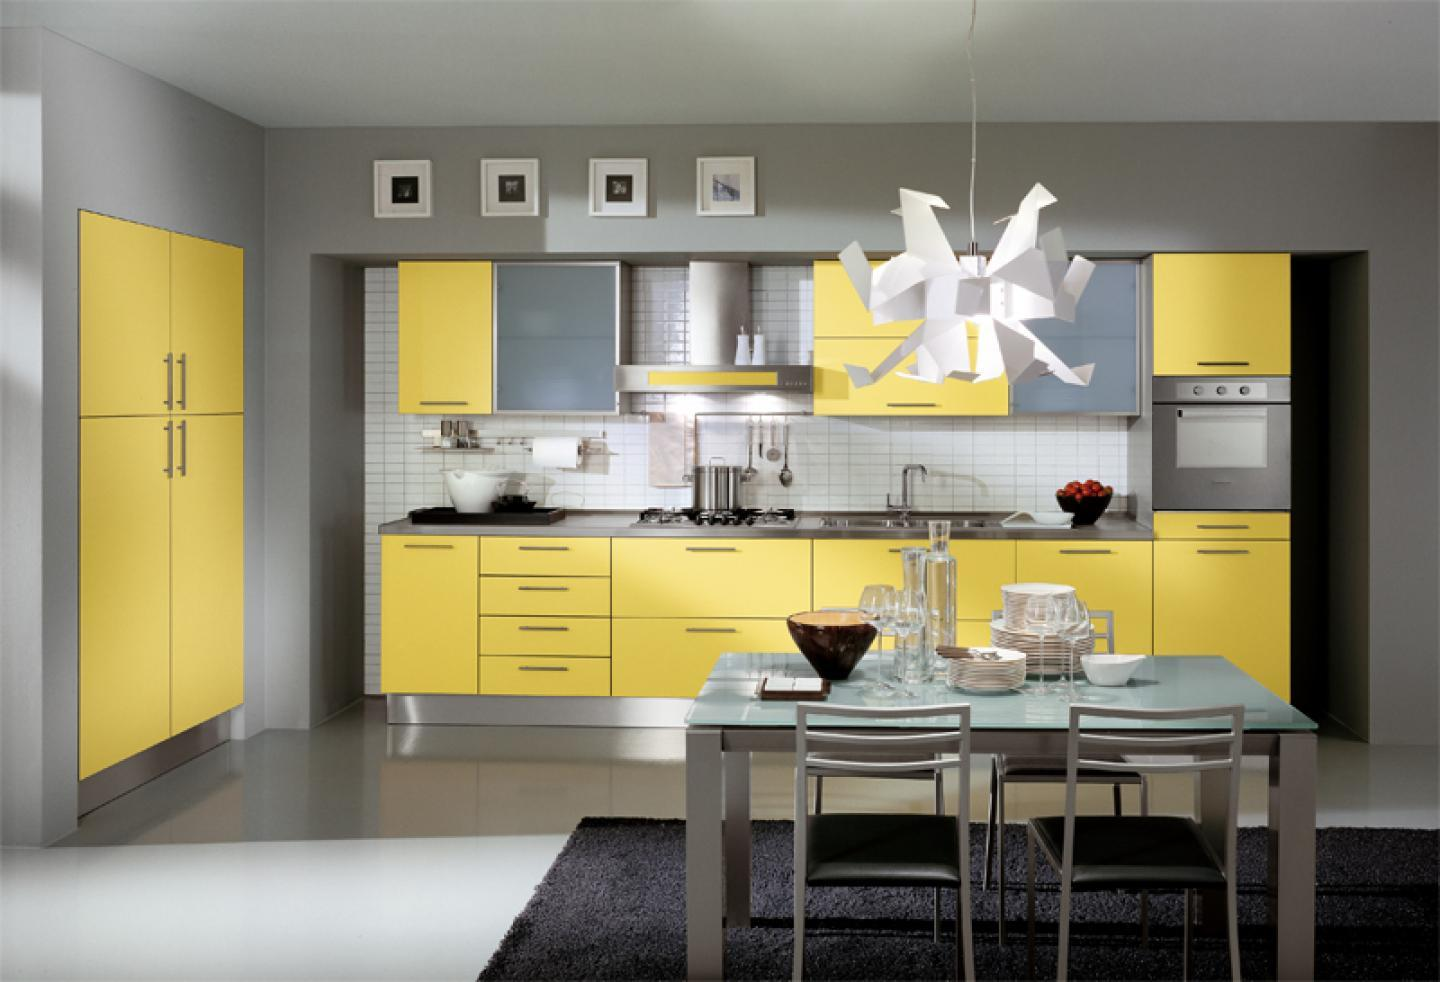 Yellow Kitchen Design Ideas To Brighten an Otherwise Conventional Kitchen